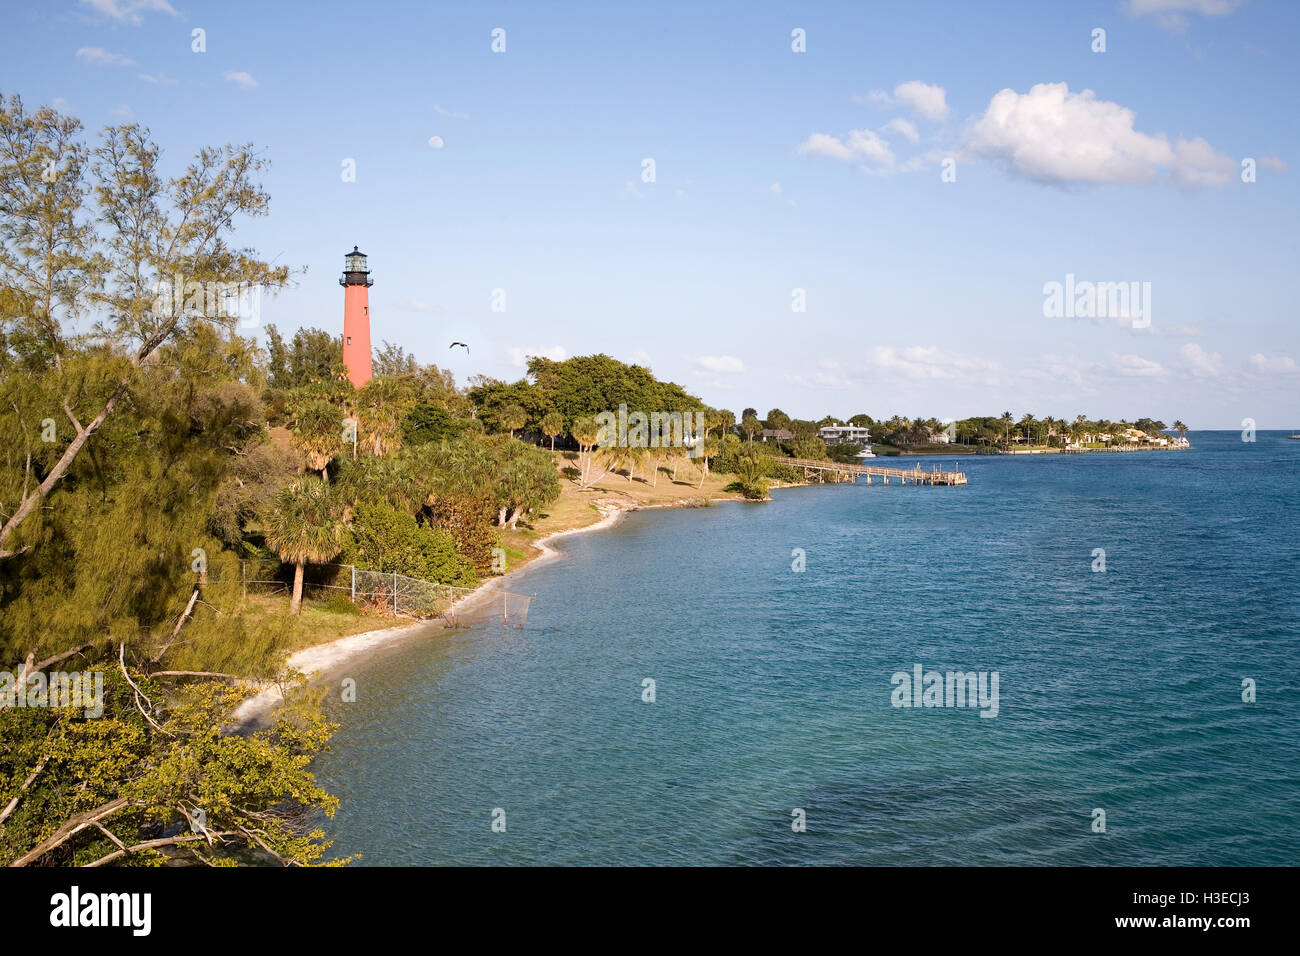 View of the Jupiter Inlet coast line from the Jupiter Inlet Bridge with the brick orange tower of Jupiter Lighthouse - Stock Image